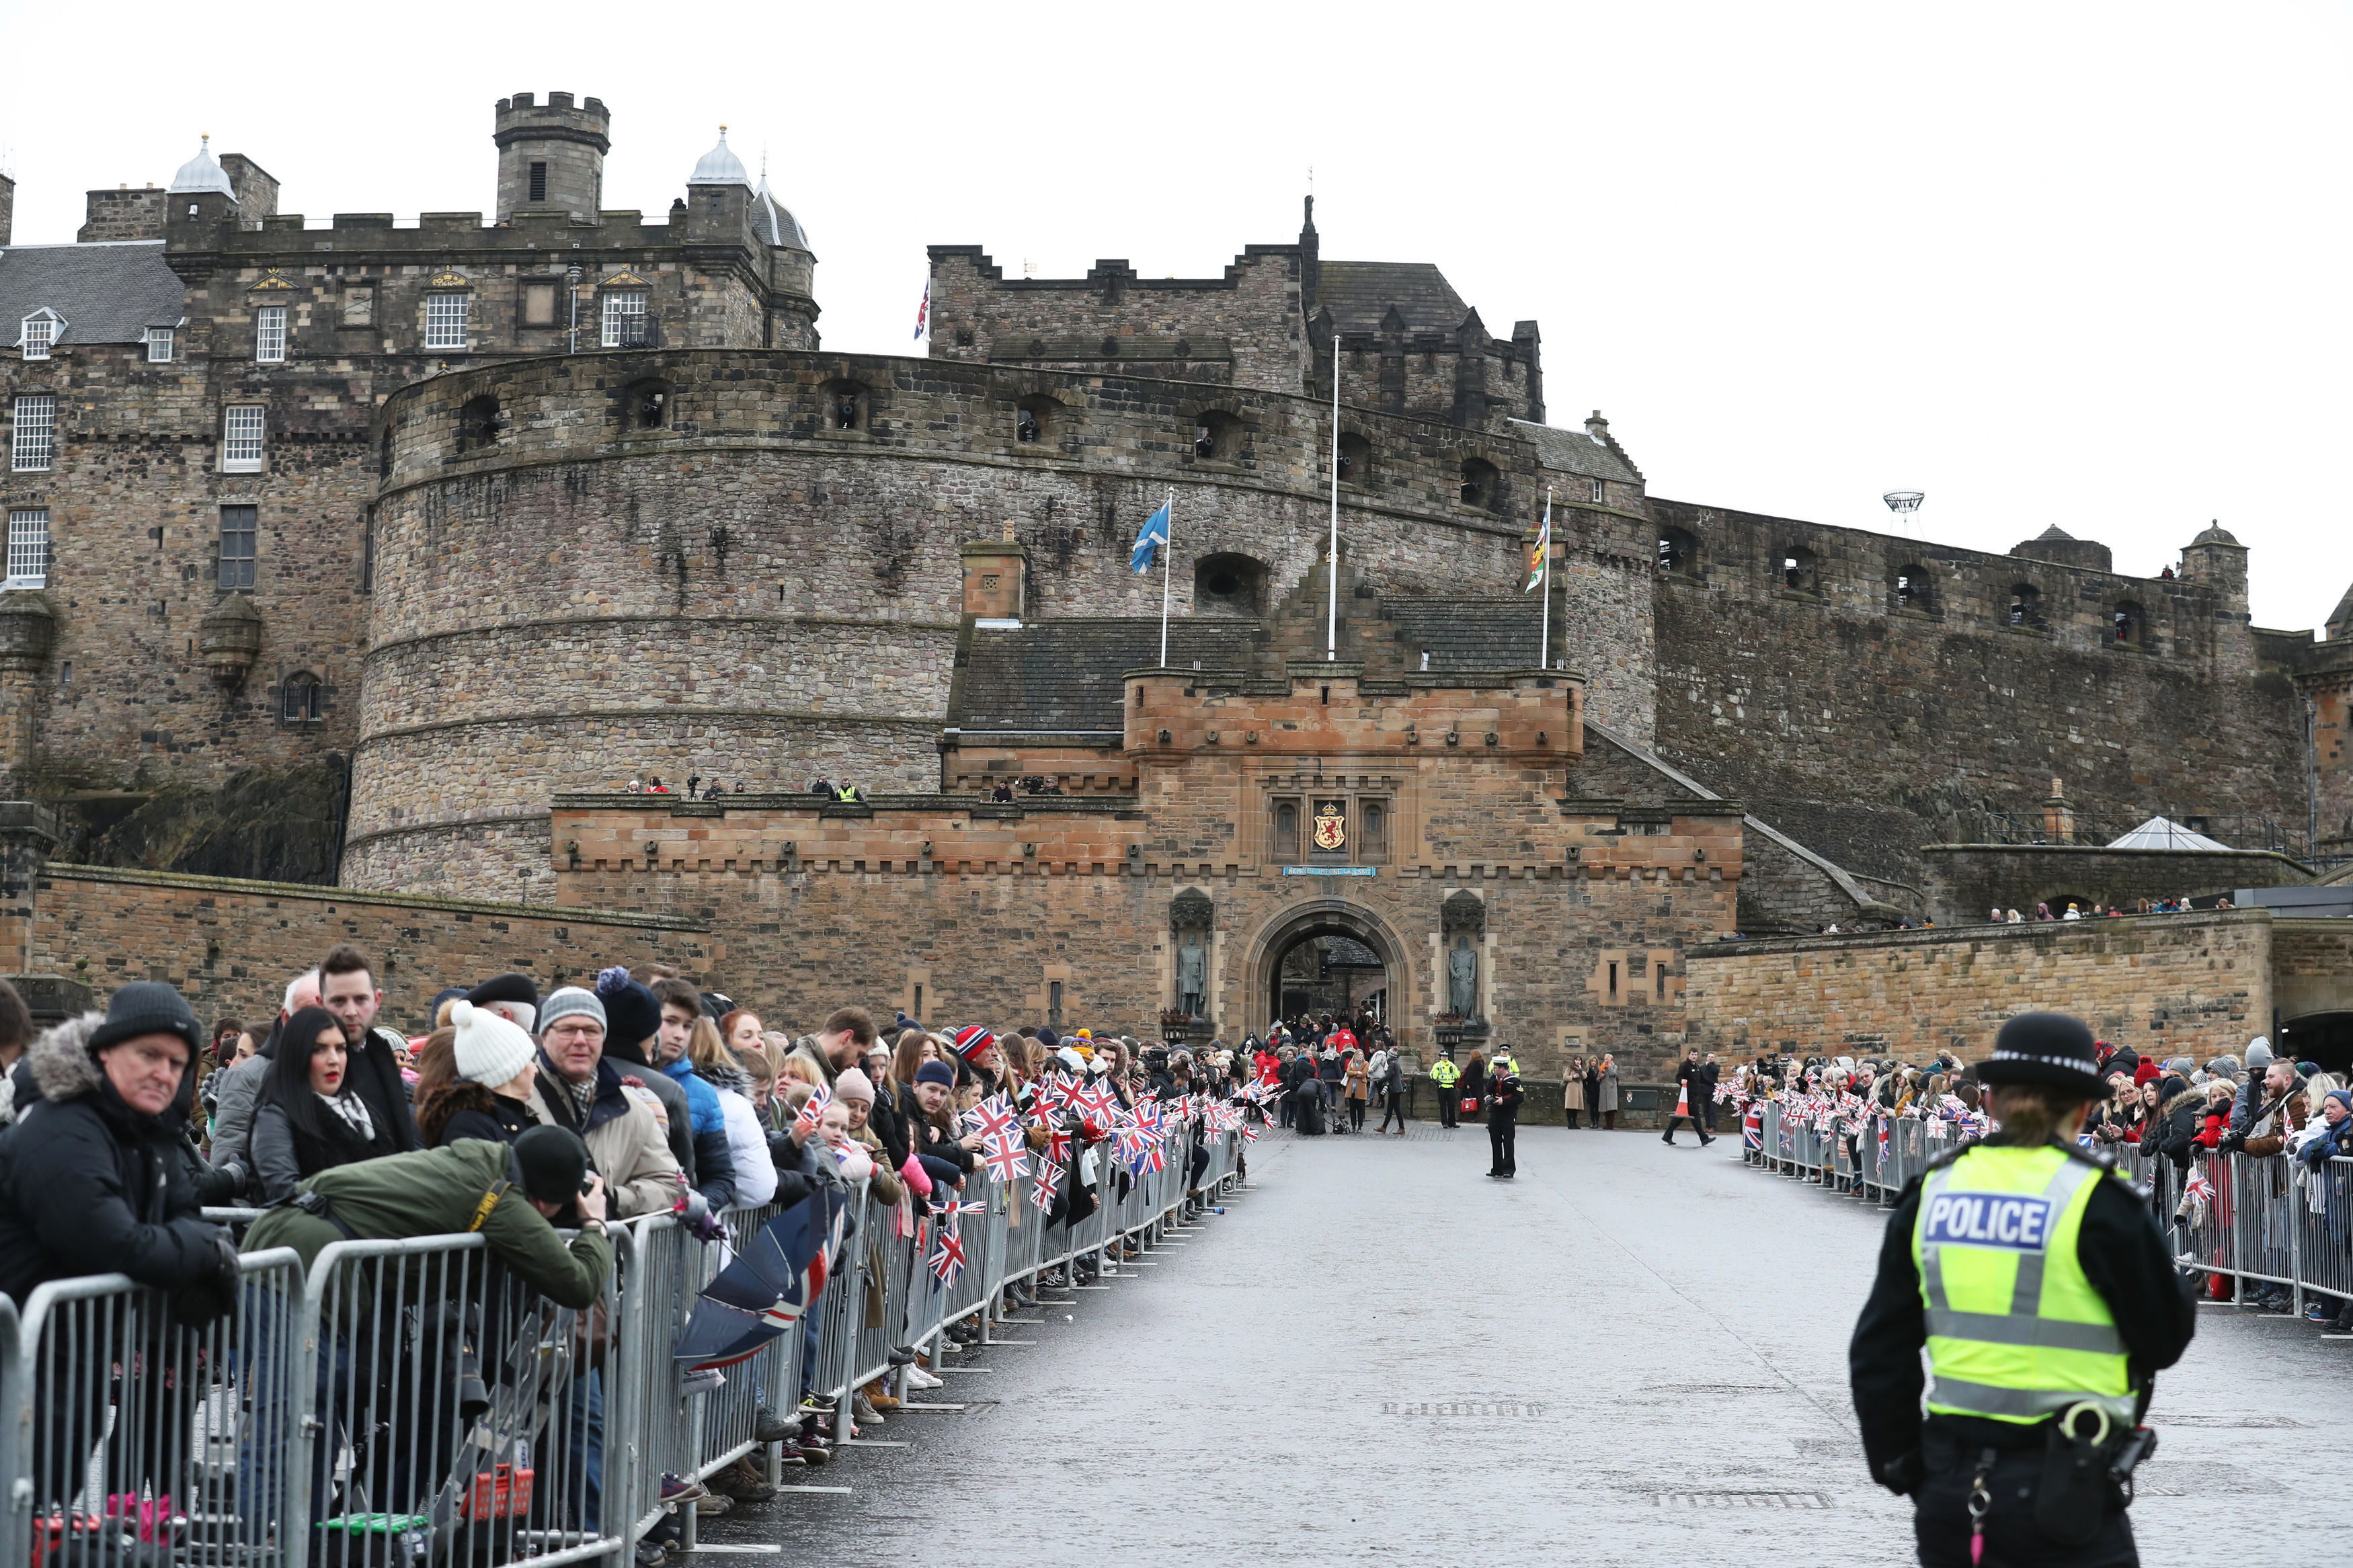 Crowds gather ahead of a visit by Prince Harry and Meghan Markle to Edinburgh Castle (Andrew Milligan/PA)